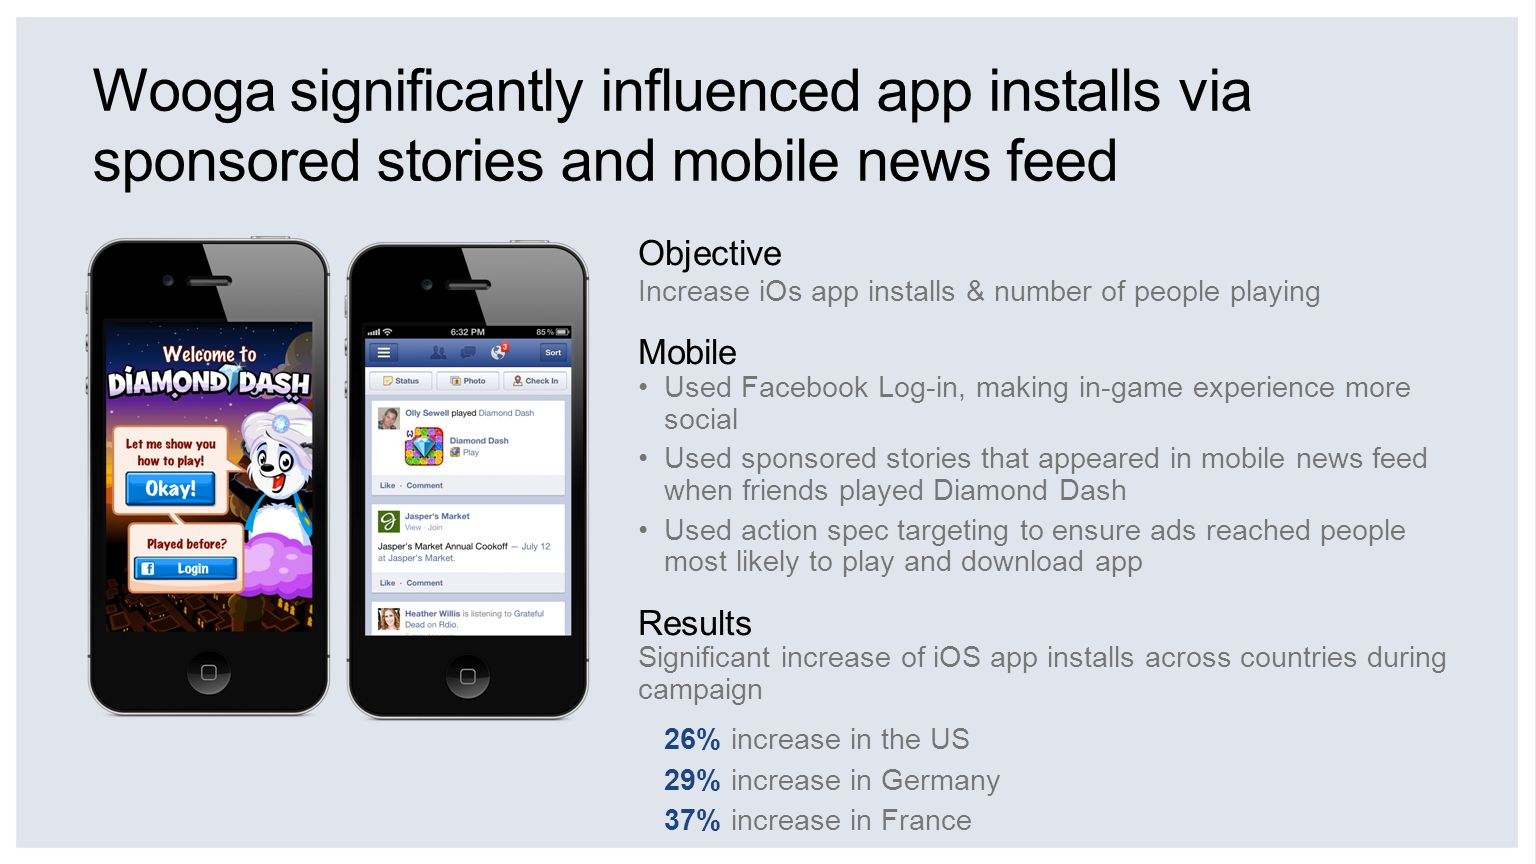 Wooga significantly influenced app installs via sponsored stories and mobile news feed Objective Increase iOs app installs & number of people playing Mobile Used Facebook Log-in, making in-game experience more social Used sponsored stories that appeared in mobile news feed when friends played Diamond Dash Used action spec targeting to ensure ads reached people most likely to play and download app Results Significant increase of iOS app installs across countries during campaign 26% increase in the US 29% increase in Germany 37% increase in France